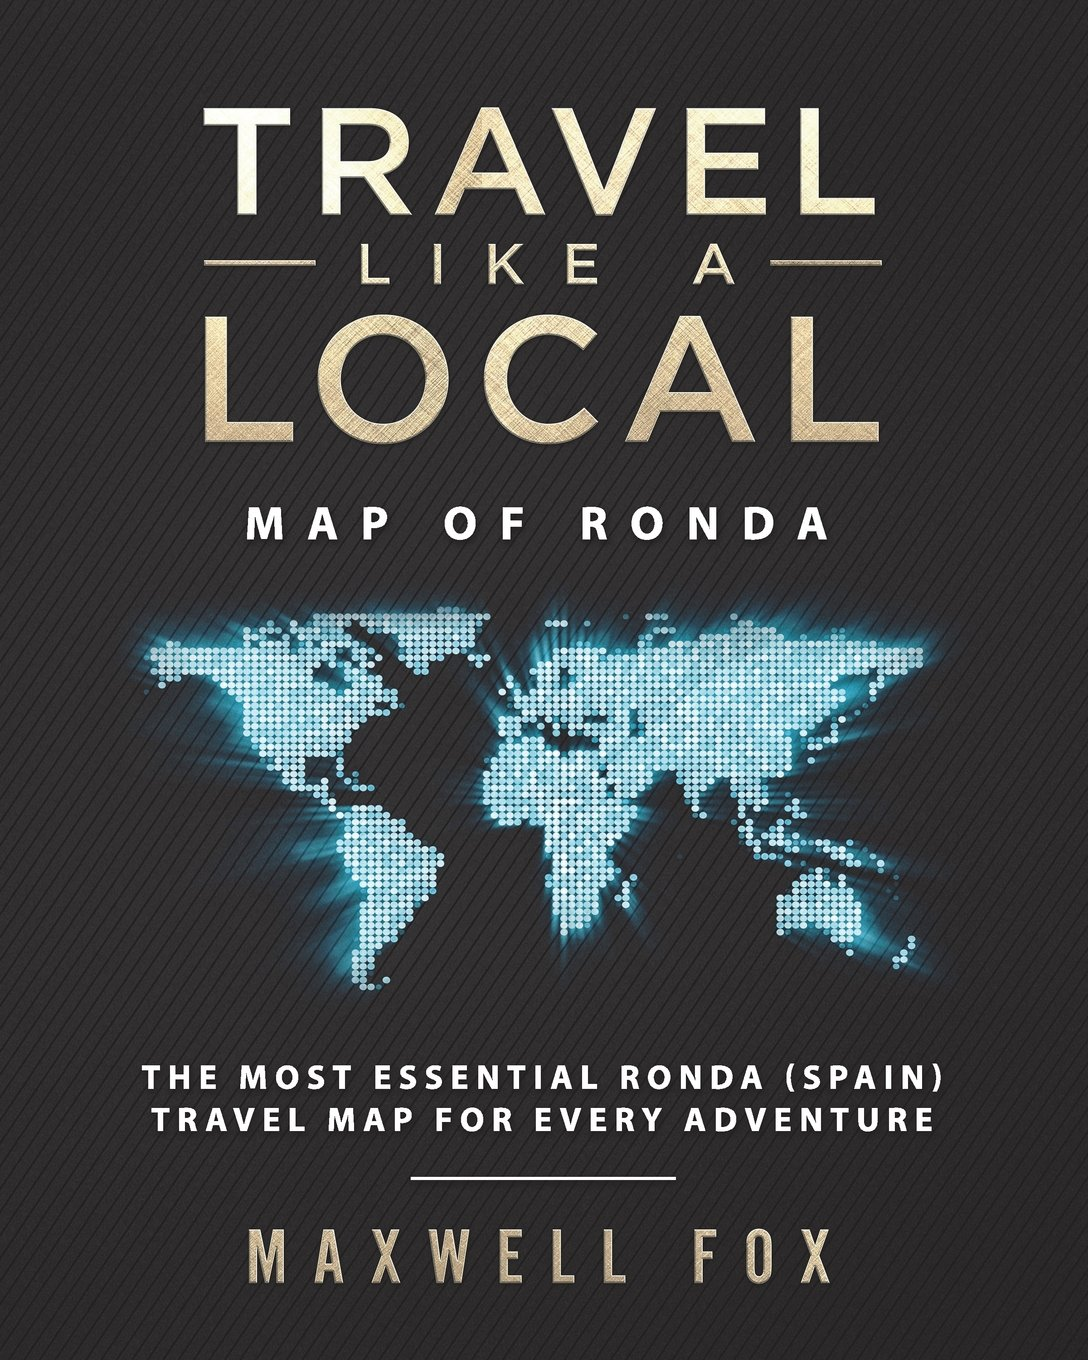 Travel Like a Local - Map of Ronda: The Most Essential Ronda (Spain) Travel Map for Every Adventure ebook